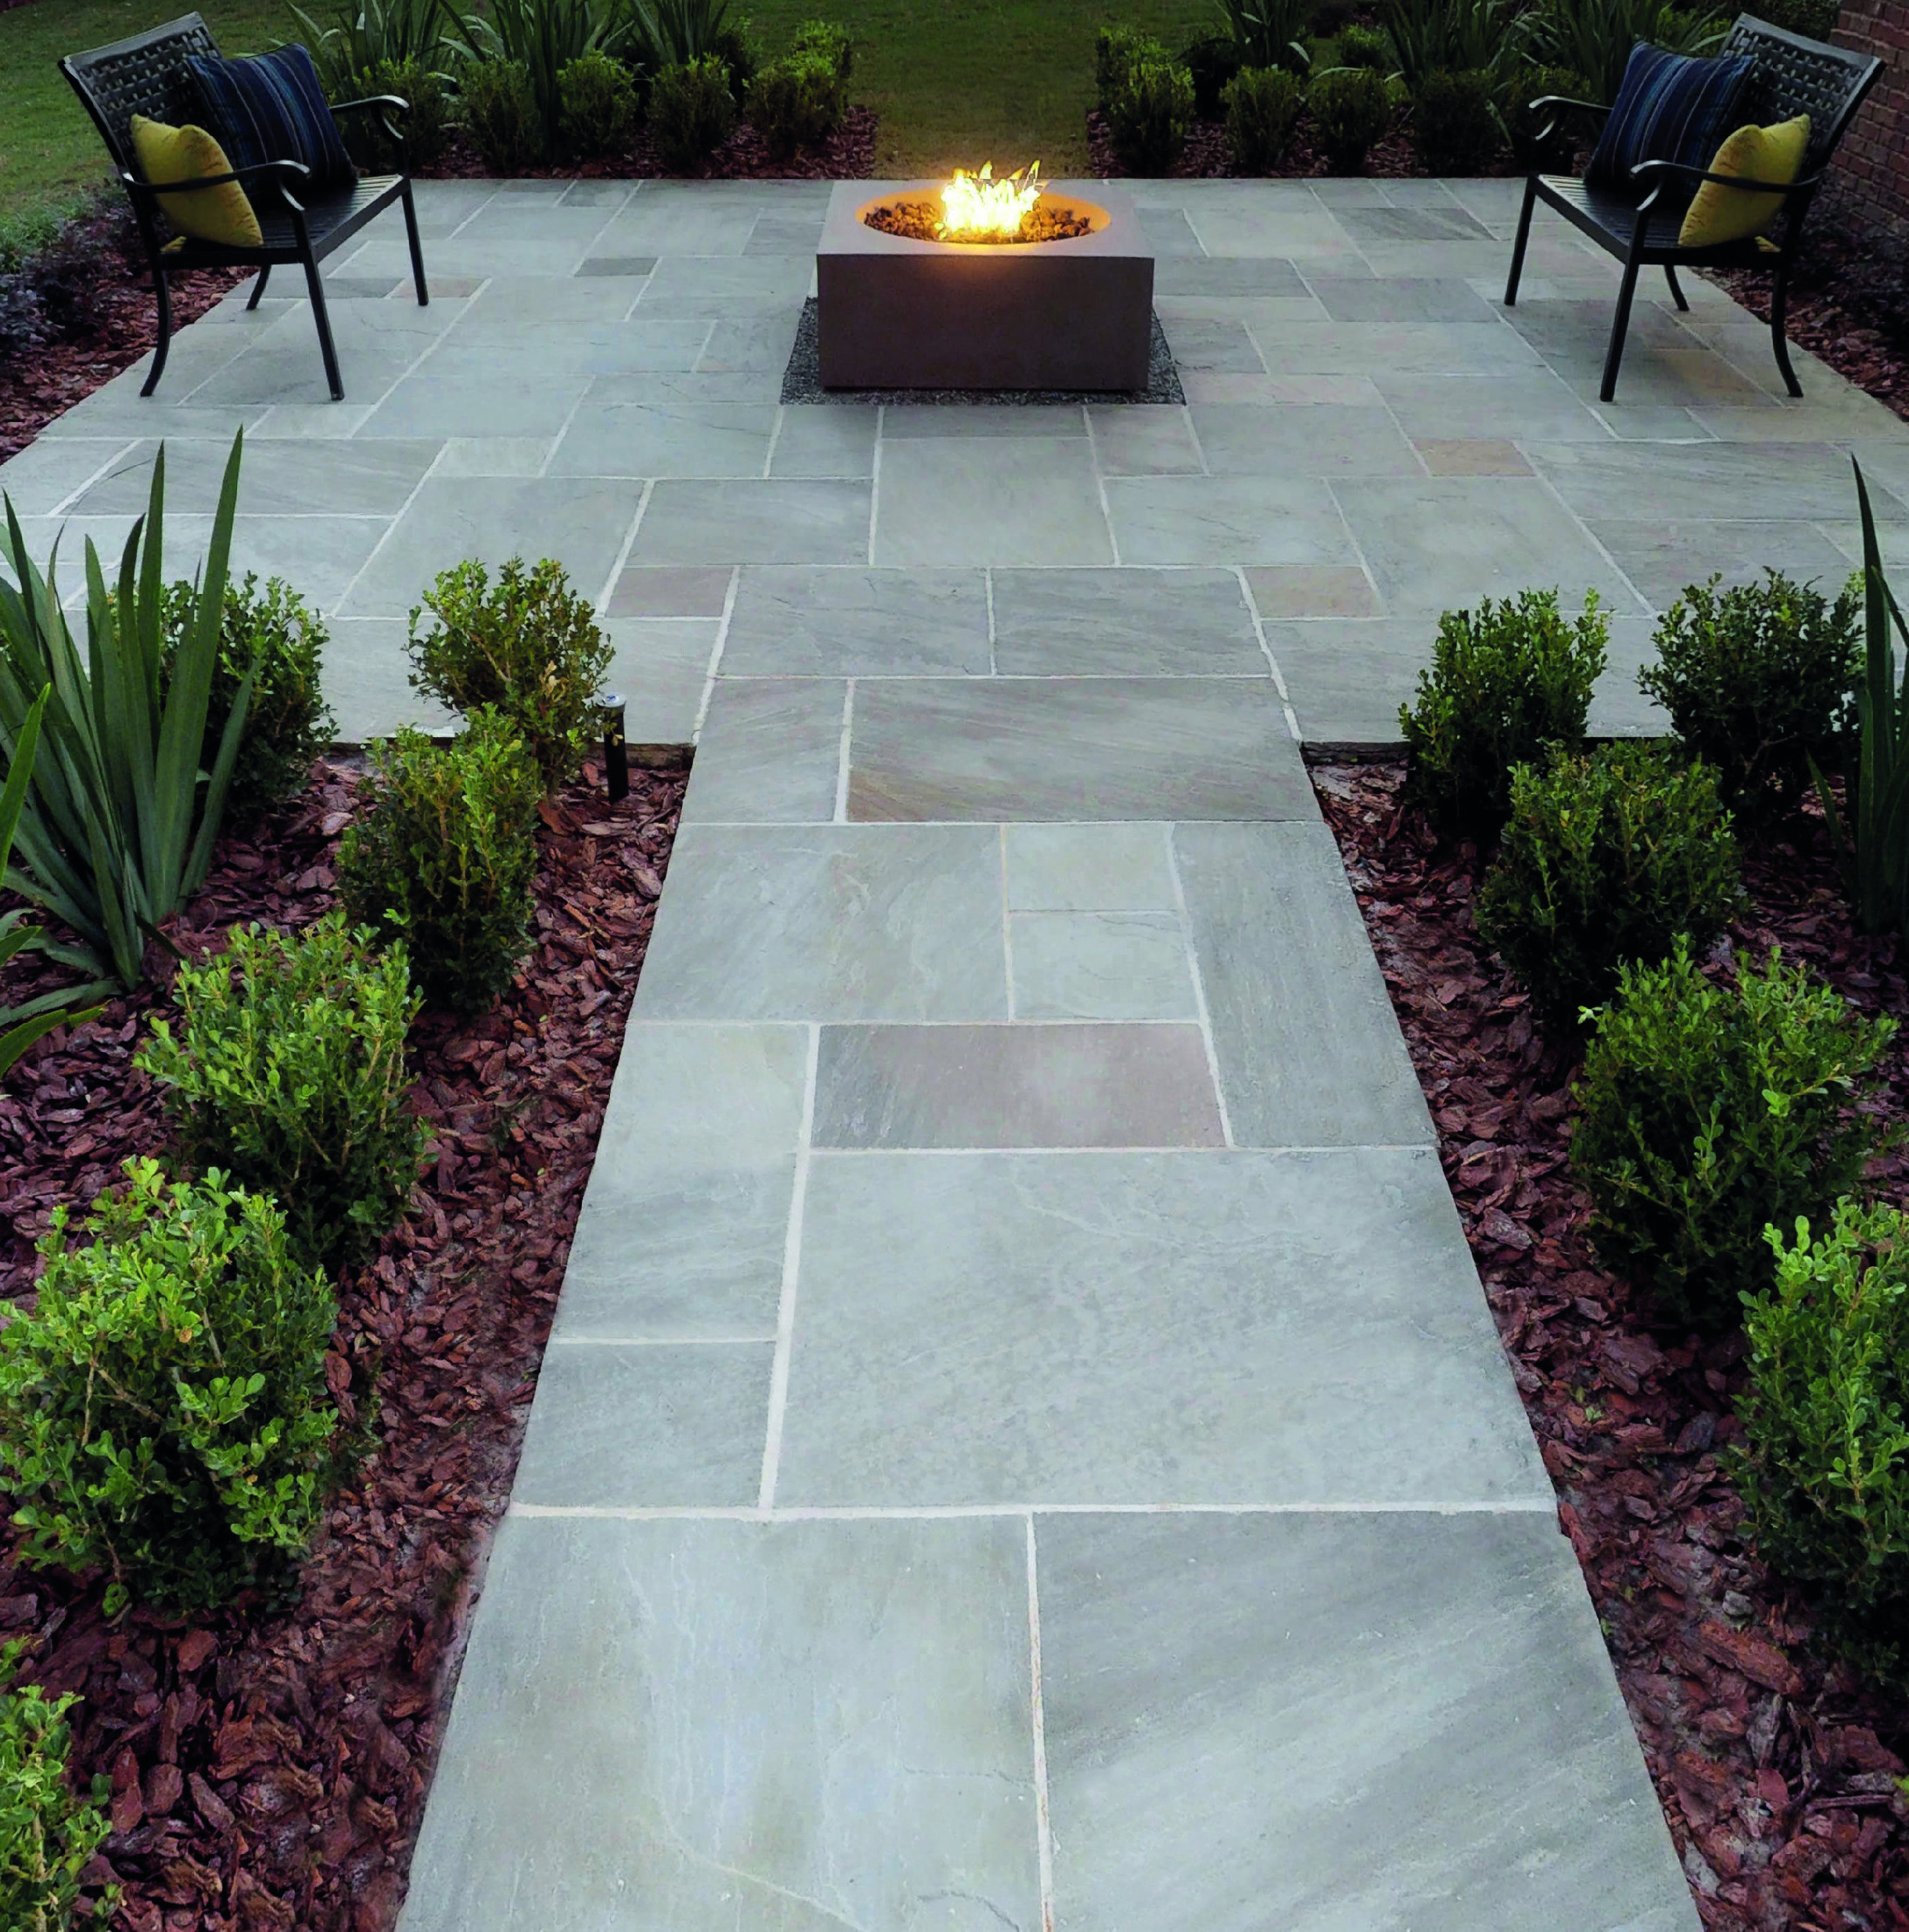 Natural Paving | Classicstone | Paving | Landscaping ... on Paving Ideas For Back Gardens id=45466